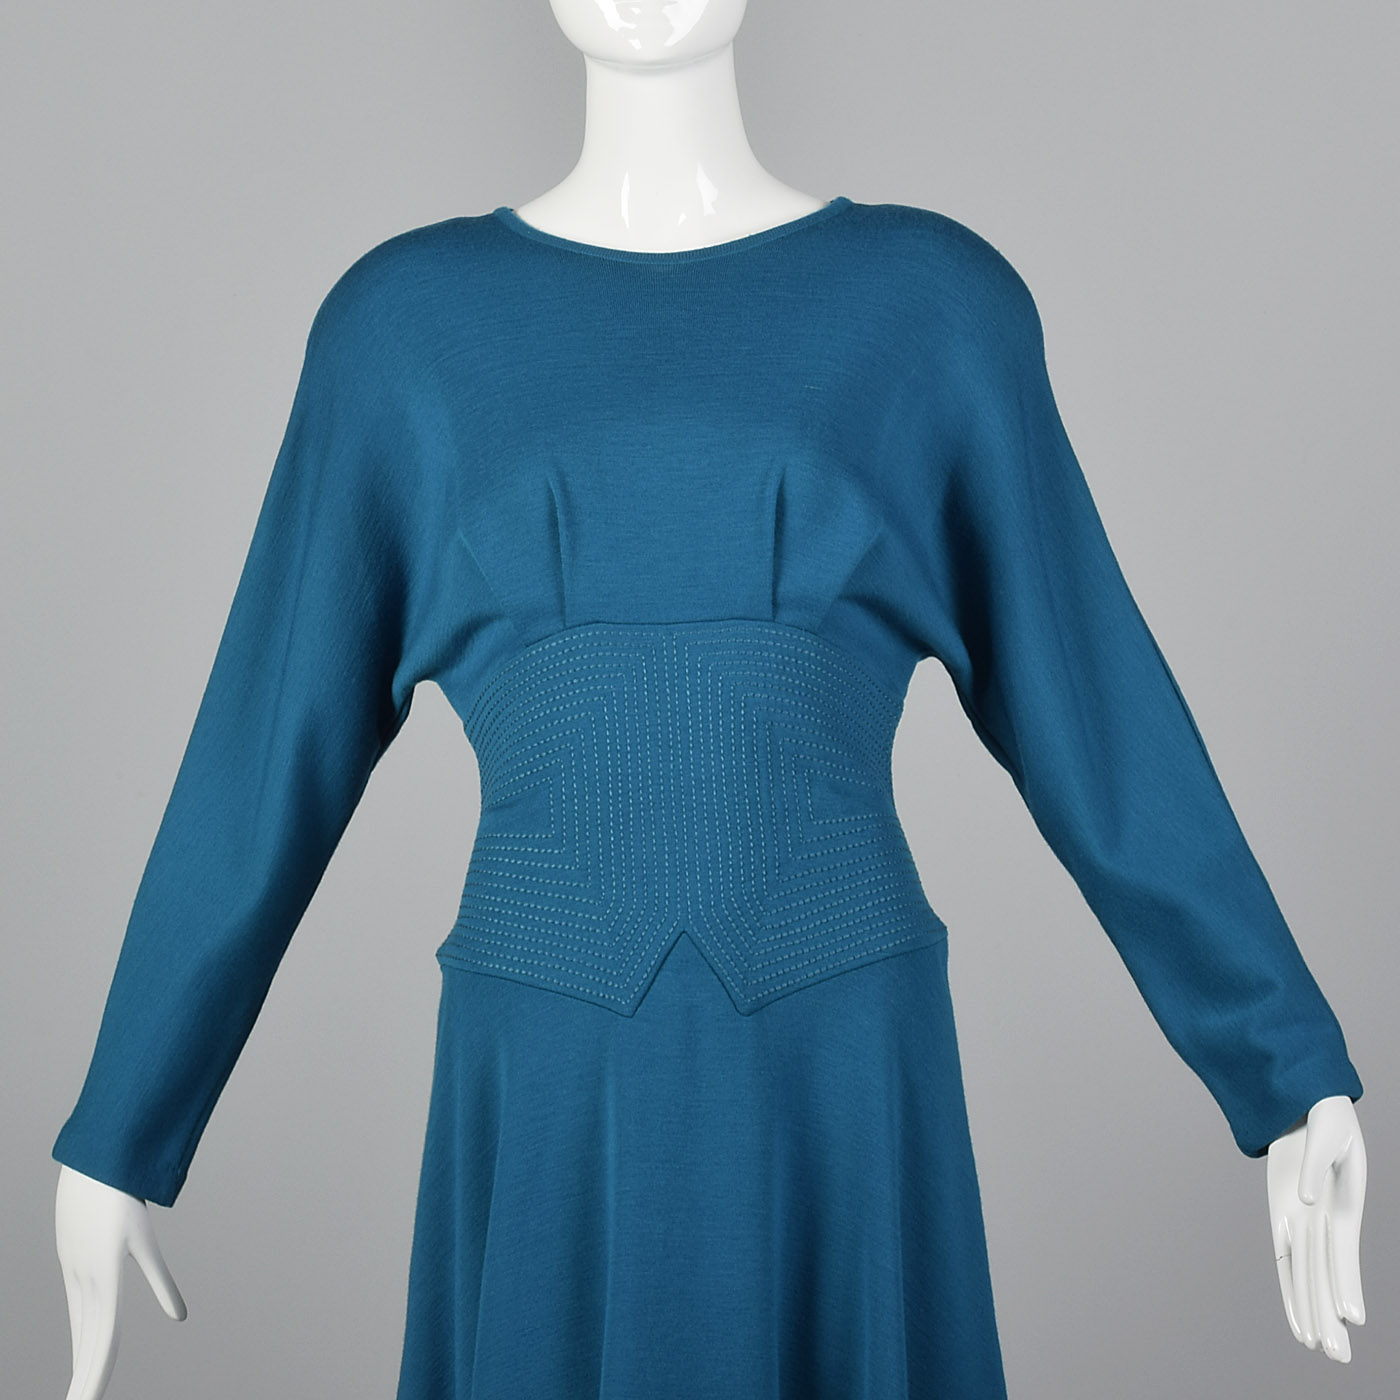 1980s Teal Wool Midi Dress